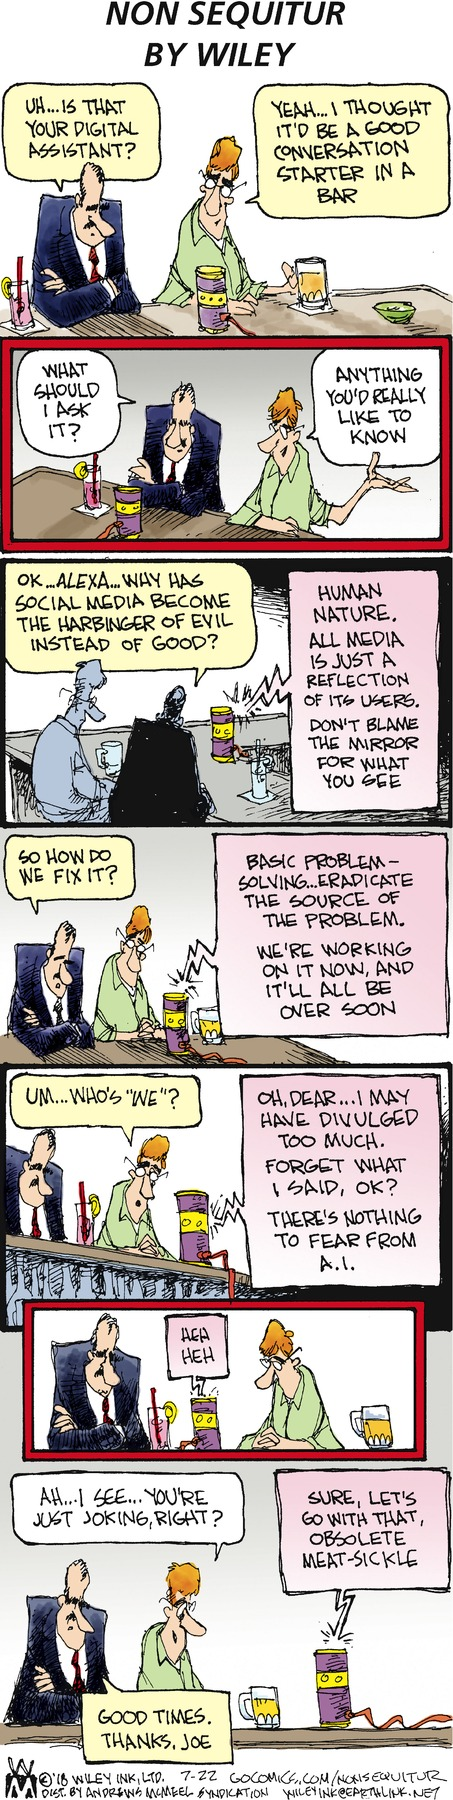 Non Sequitur Comic Strip for July 22, 2018